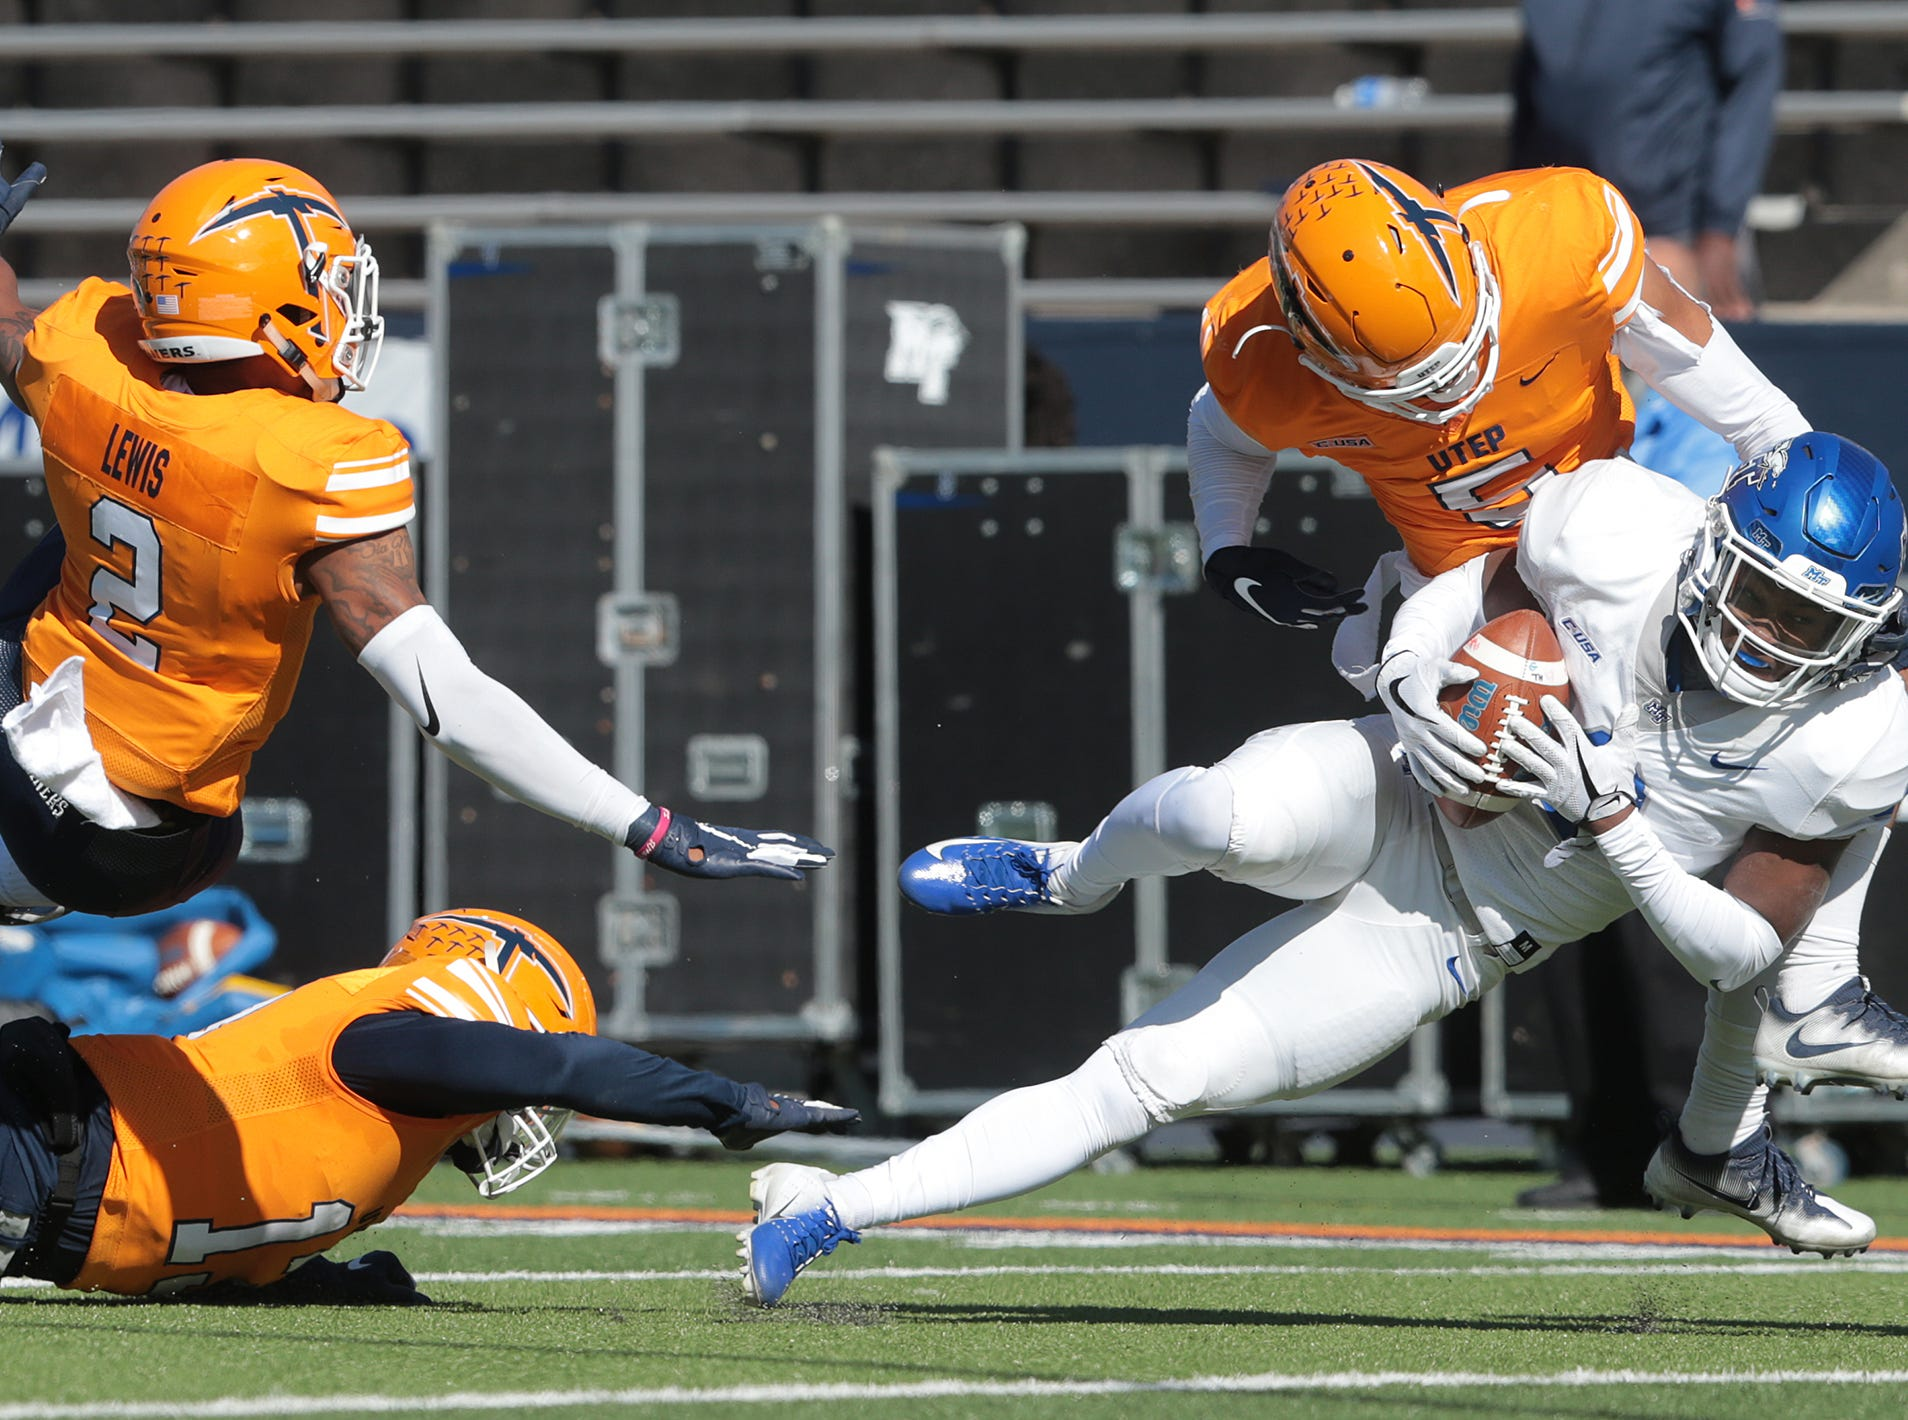 UTEP football had a chance to add to their win this season with a visit from Middle Tennessee at the Sun Bowl Saturday. The Blue Raiders defeated the Miners 48-32.